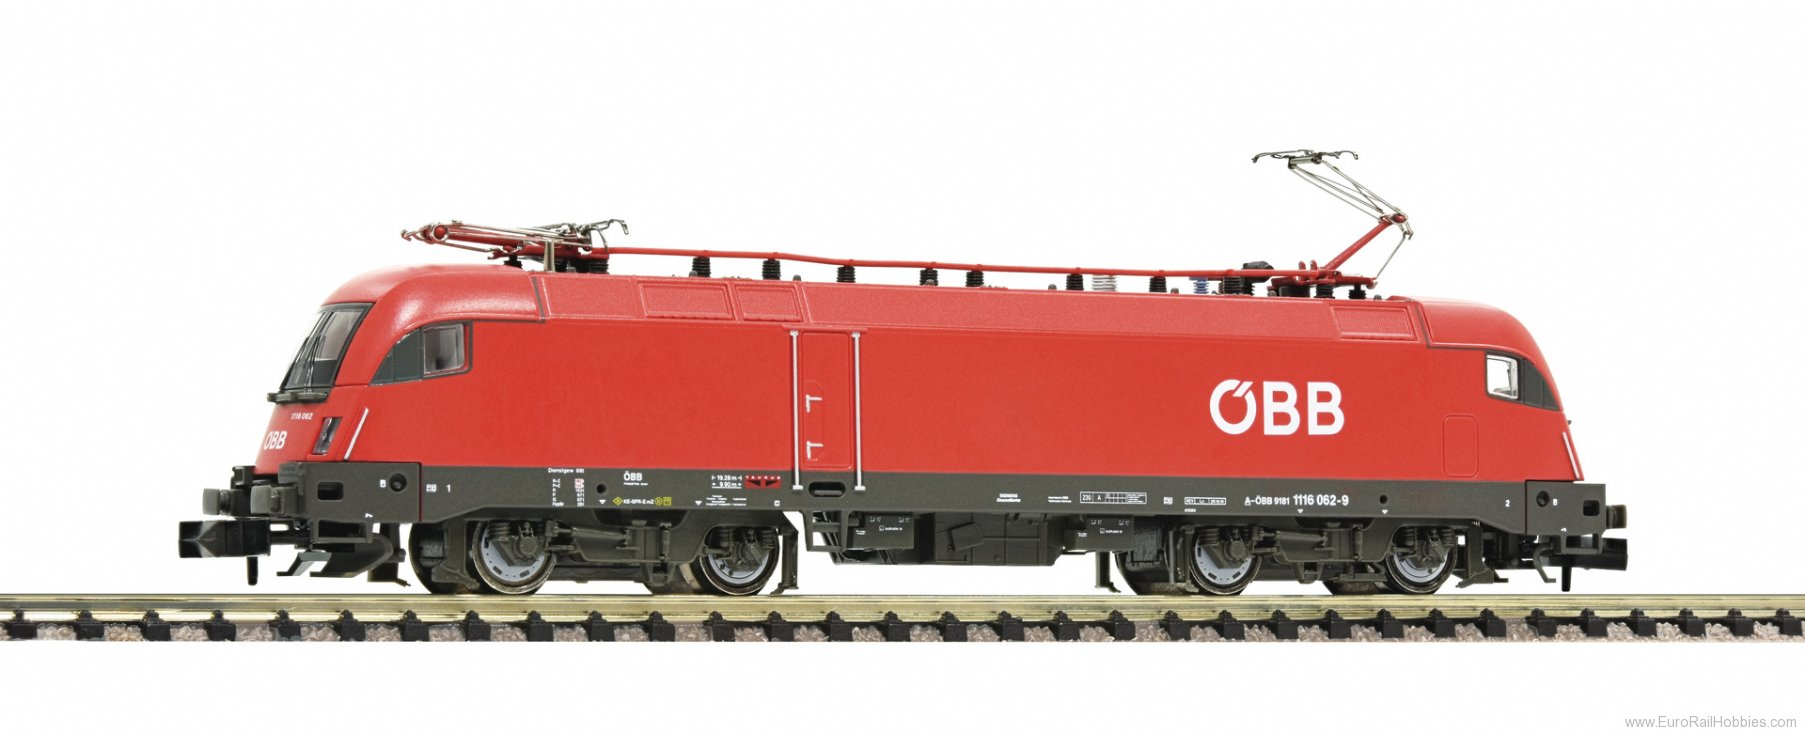 Fleischmann 731182 Electric locomotive Rh 1116 of the OBB (DCC w